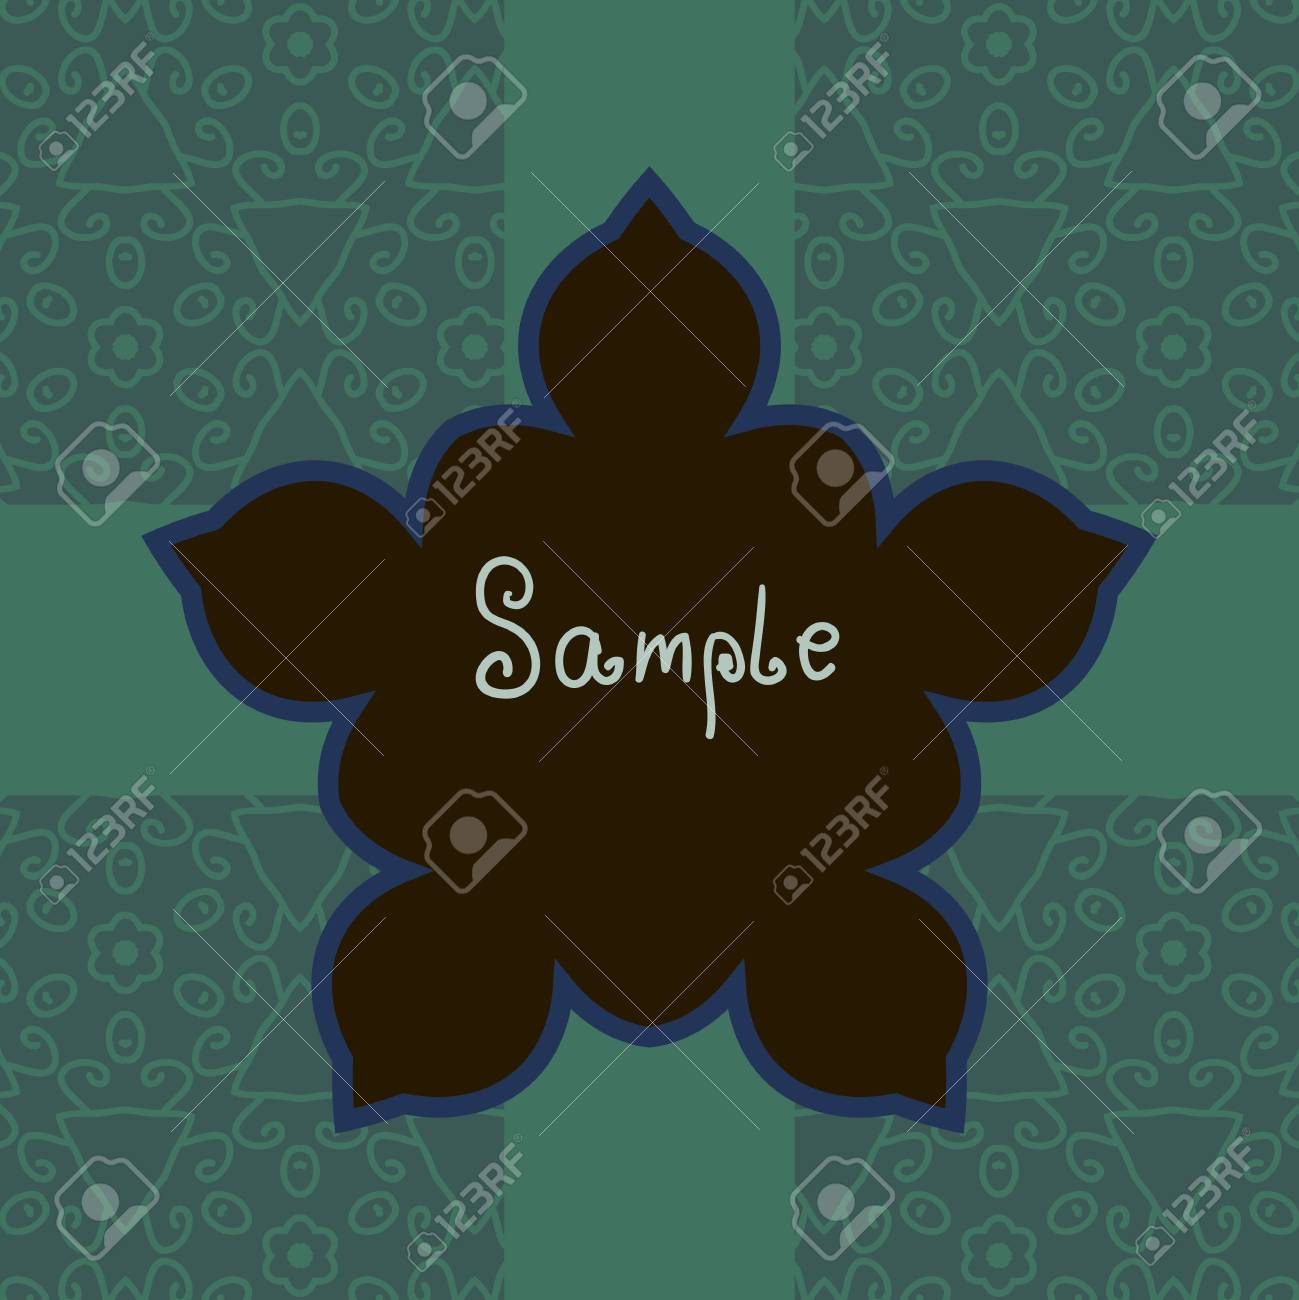 Green Floral Vector ornate frame with sample text  Perfect as invitation or announcement  Background pattern is included as seamless  All pieces are separate  Easy to change colors and edit Stock Vector - 17992378